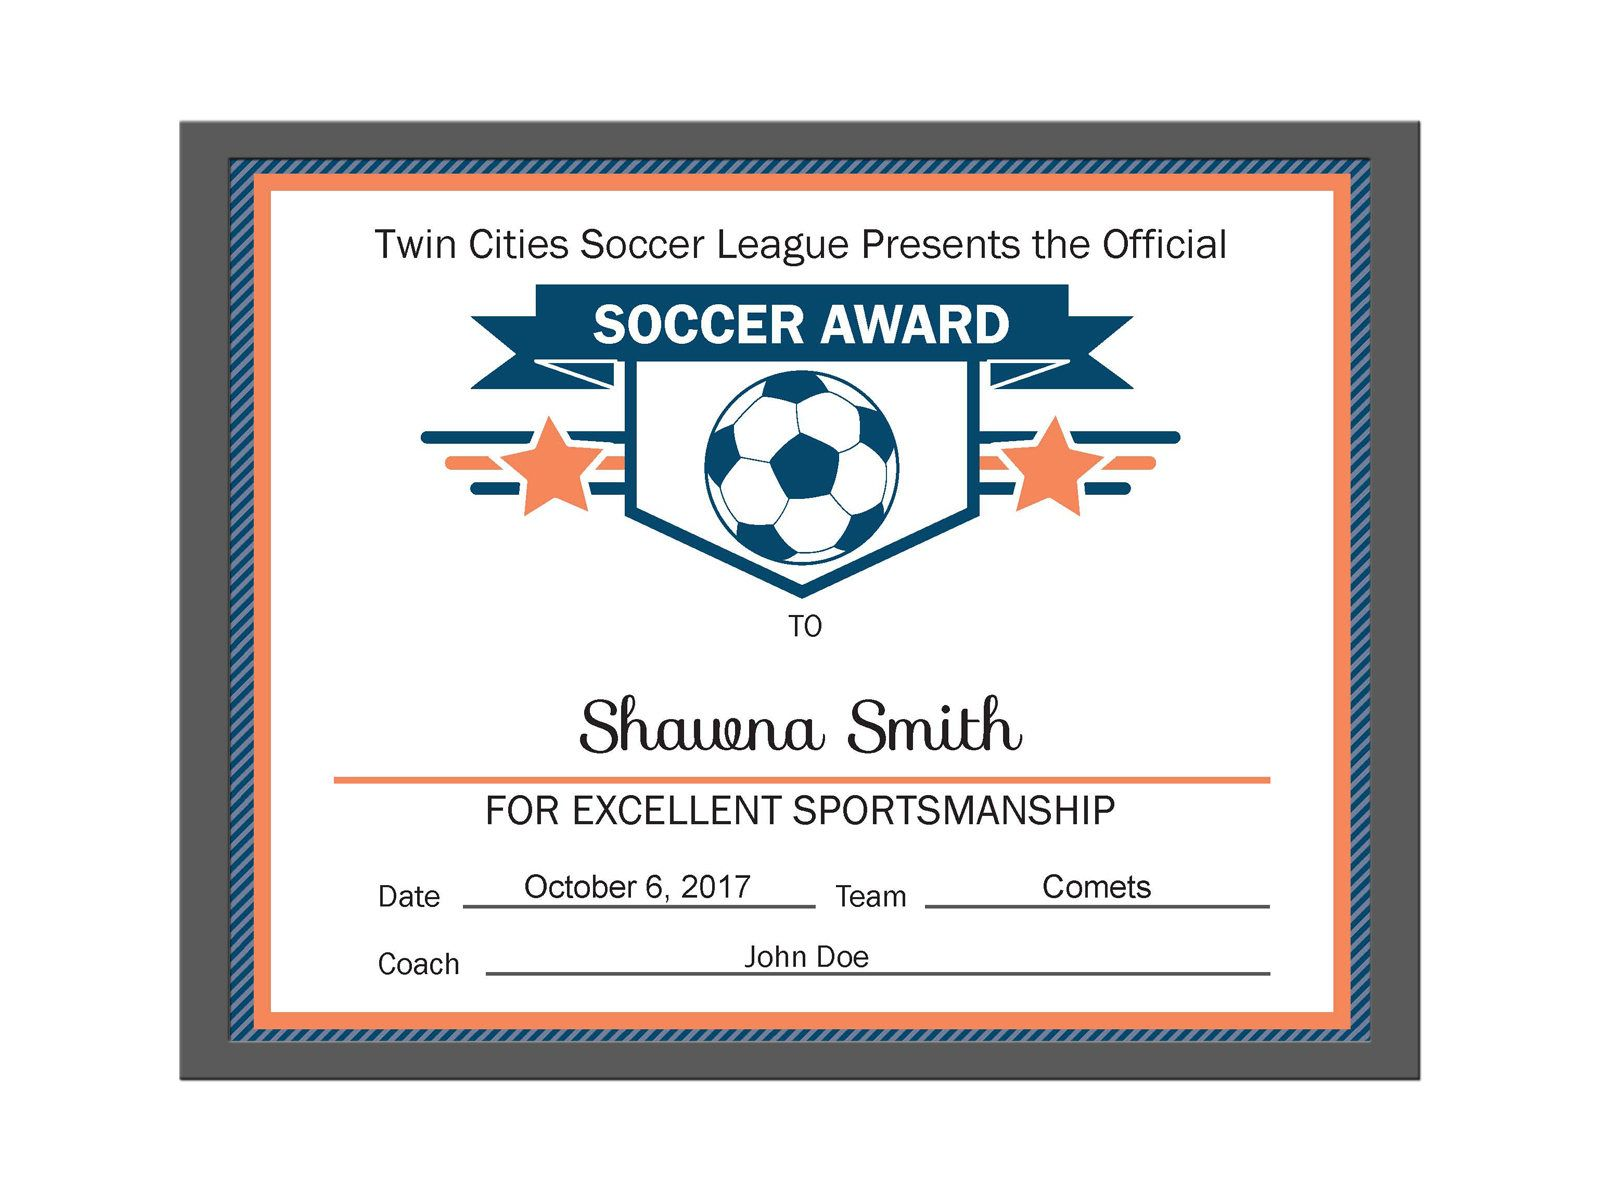 Editable pdf sports team soccer certificate award template in 3 editable pdf sports team soccer certificate award template in 3 colors orange navy red navy yadclub Choice Image